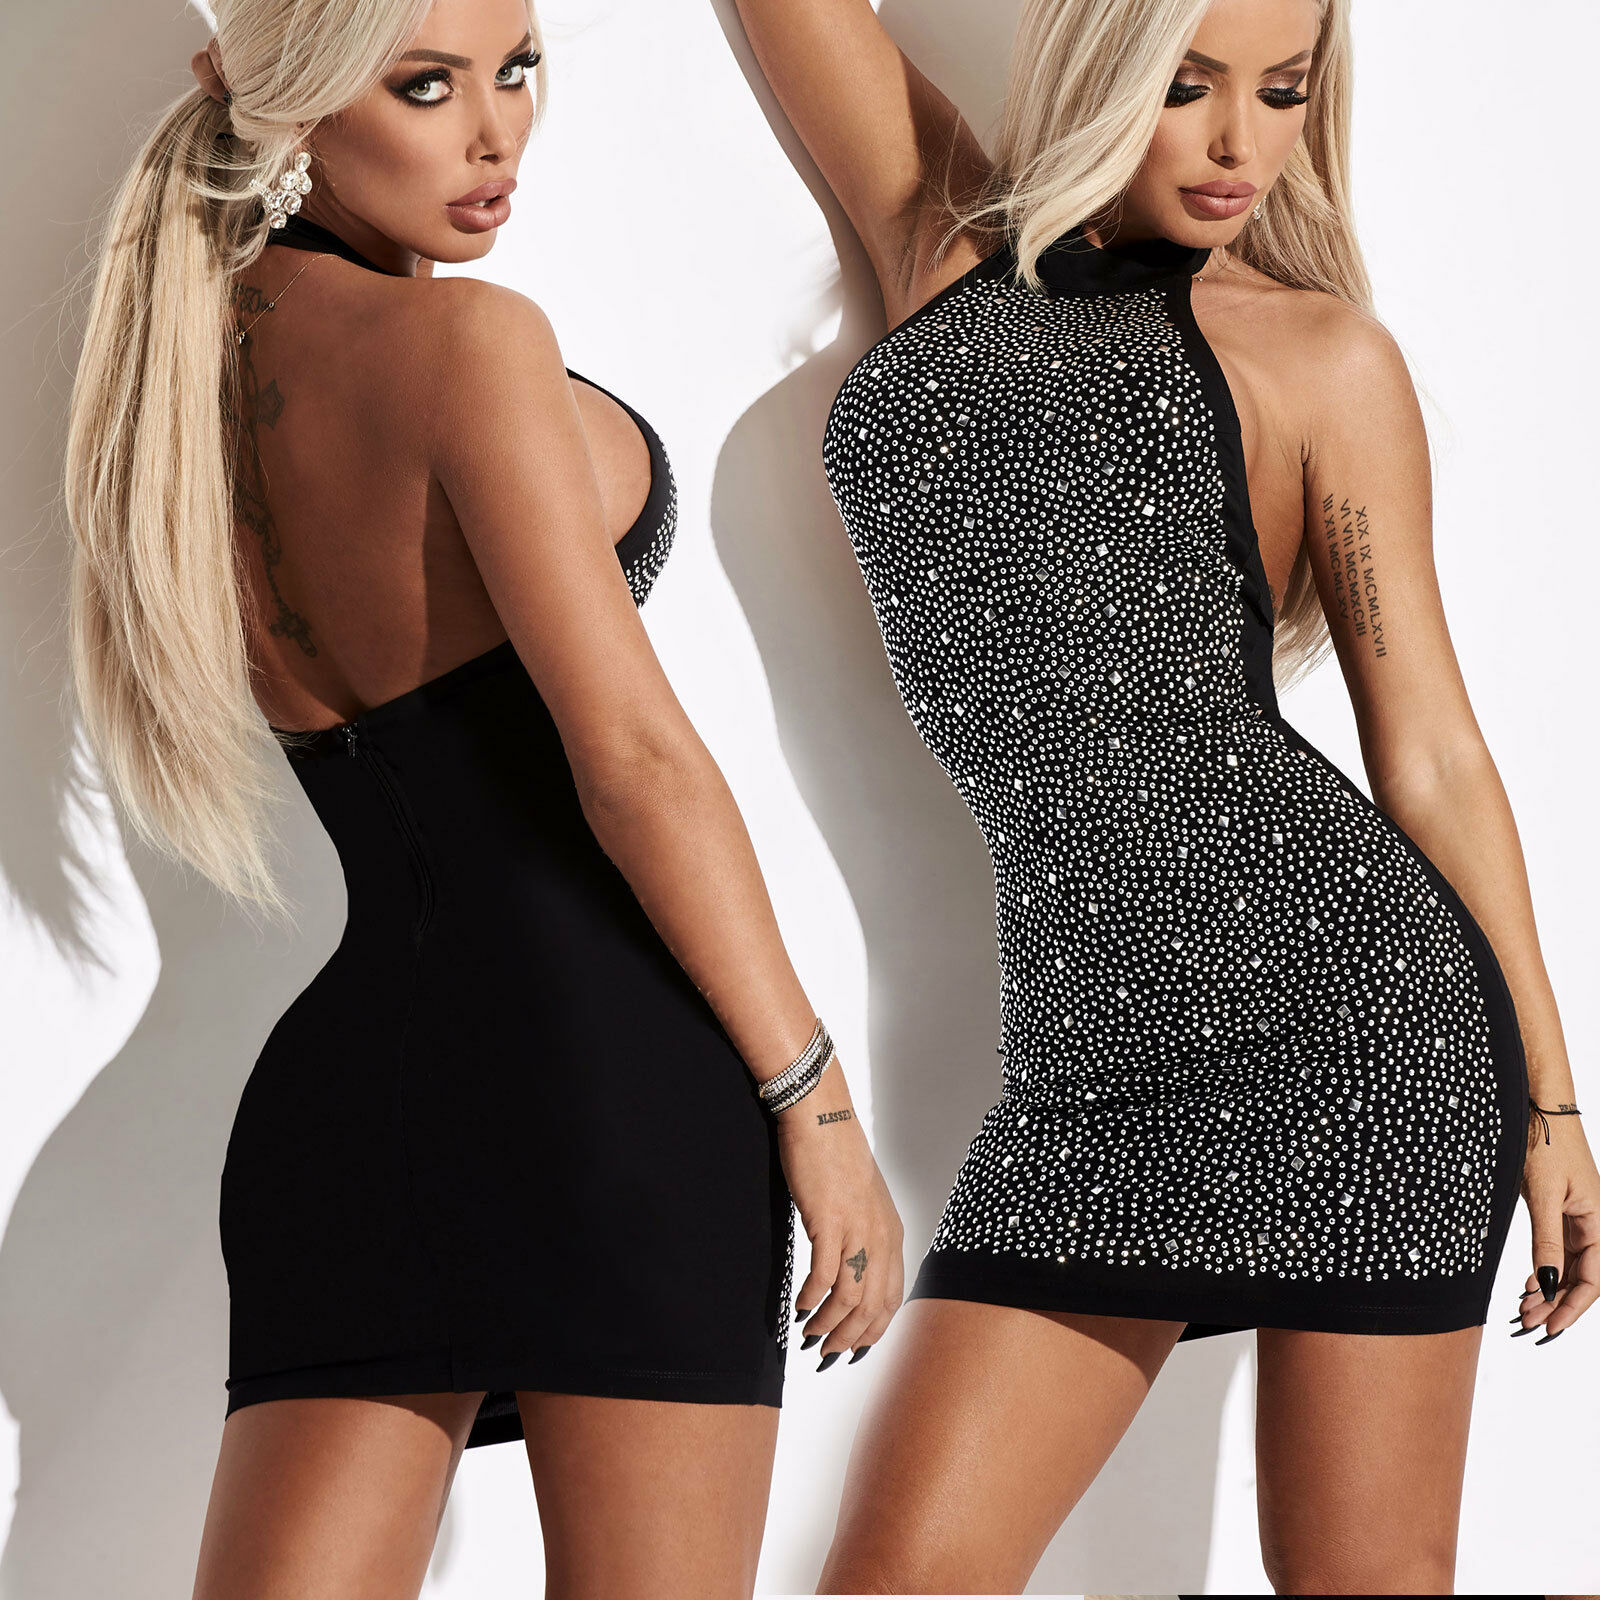 By Alina Damen Kleid Bodycon-Kleid Partykleid Longtop Minikleid Strass XS-M